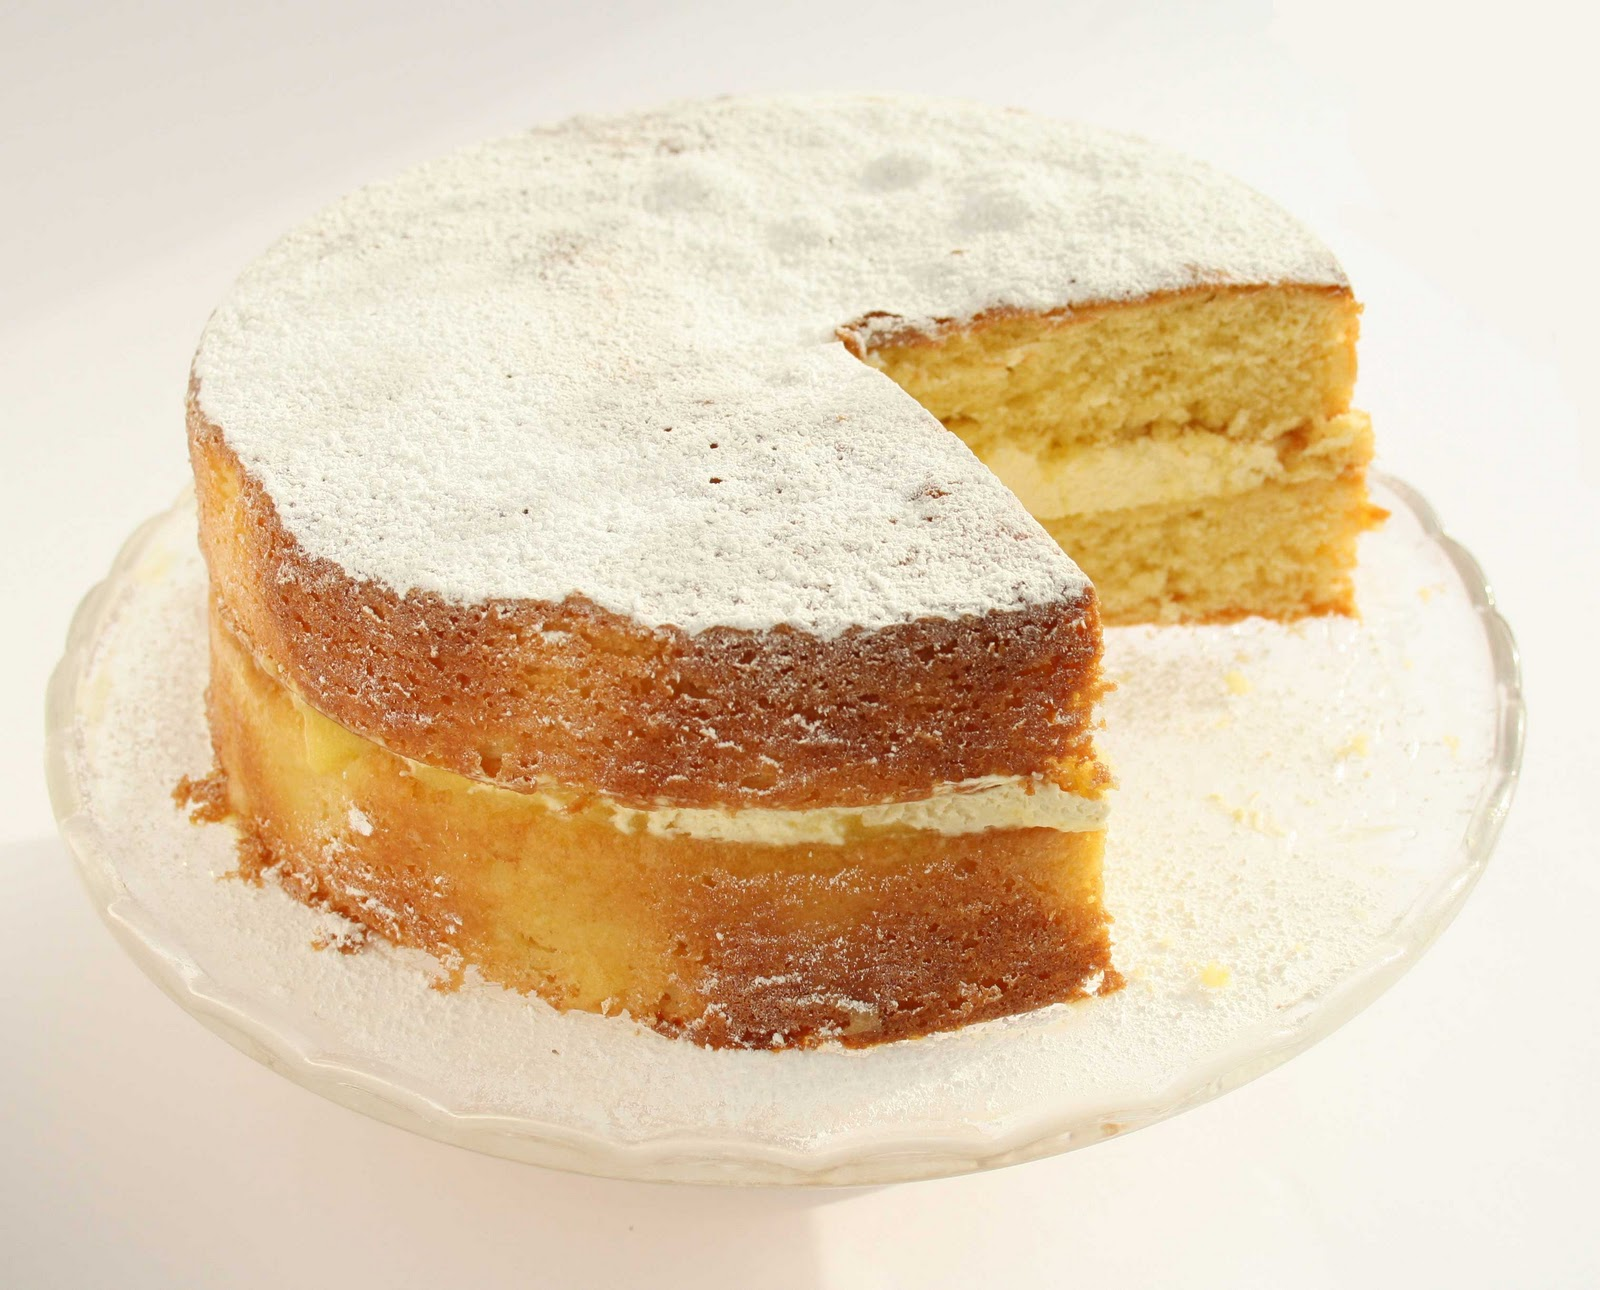 Cake Images With S : plaisir: Lemon Cake